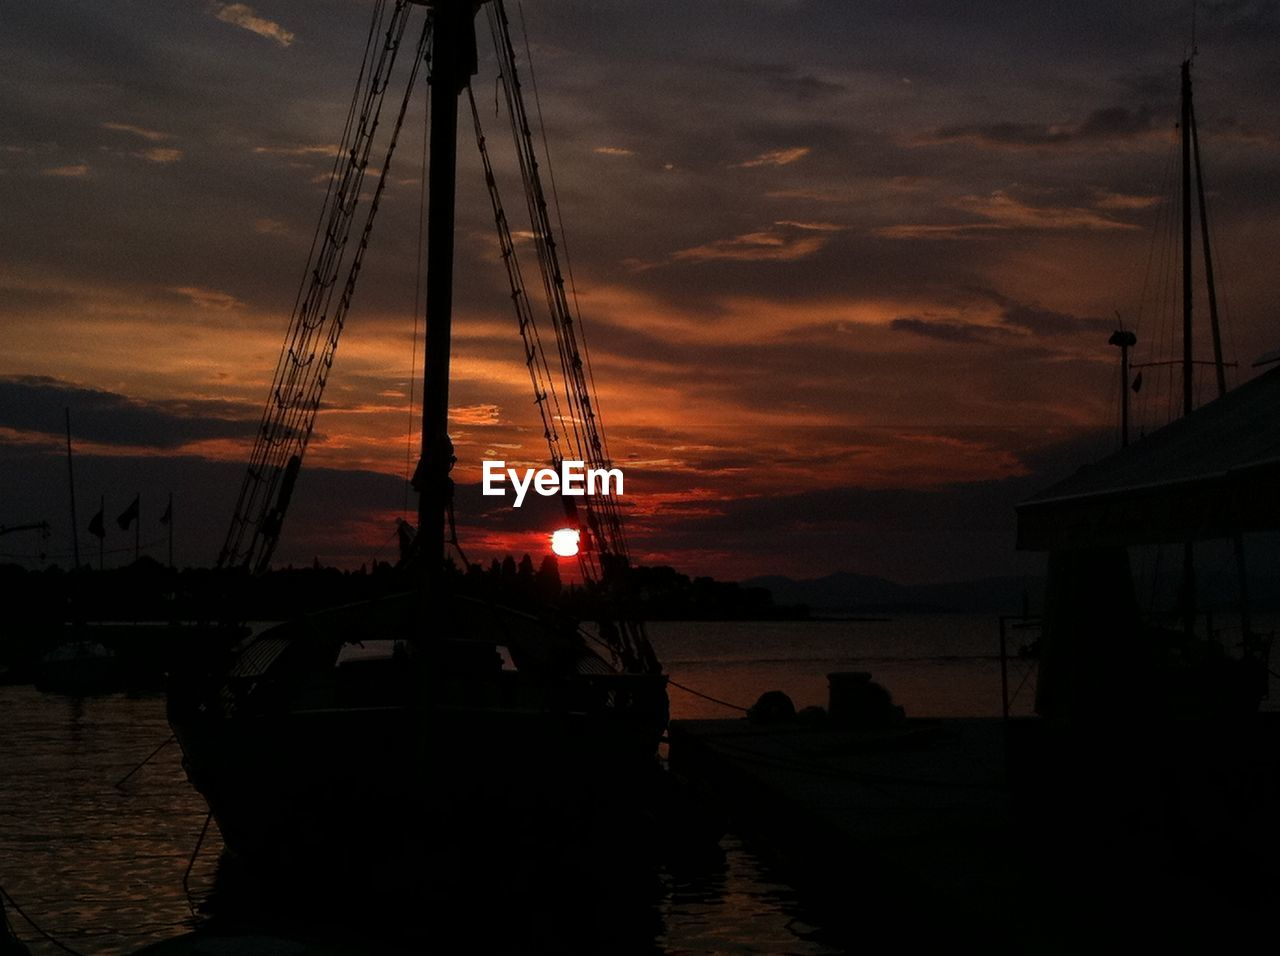 sunset, nautical vessel, sky, cloud - sky, silhouette, mast, water, boat, mode of transport, moored, transportation, harbor, nature, sea, scenics, beauty in nature, outdoors, travel destinations, sailboat, tranquility, no people, yacht, tall ship, sailing ship, day